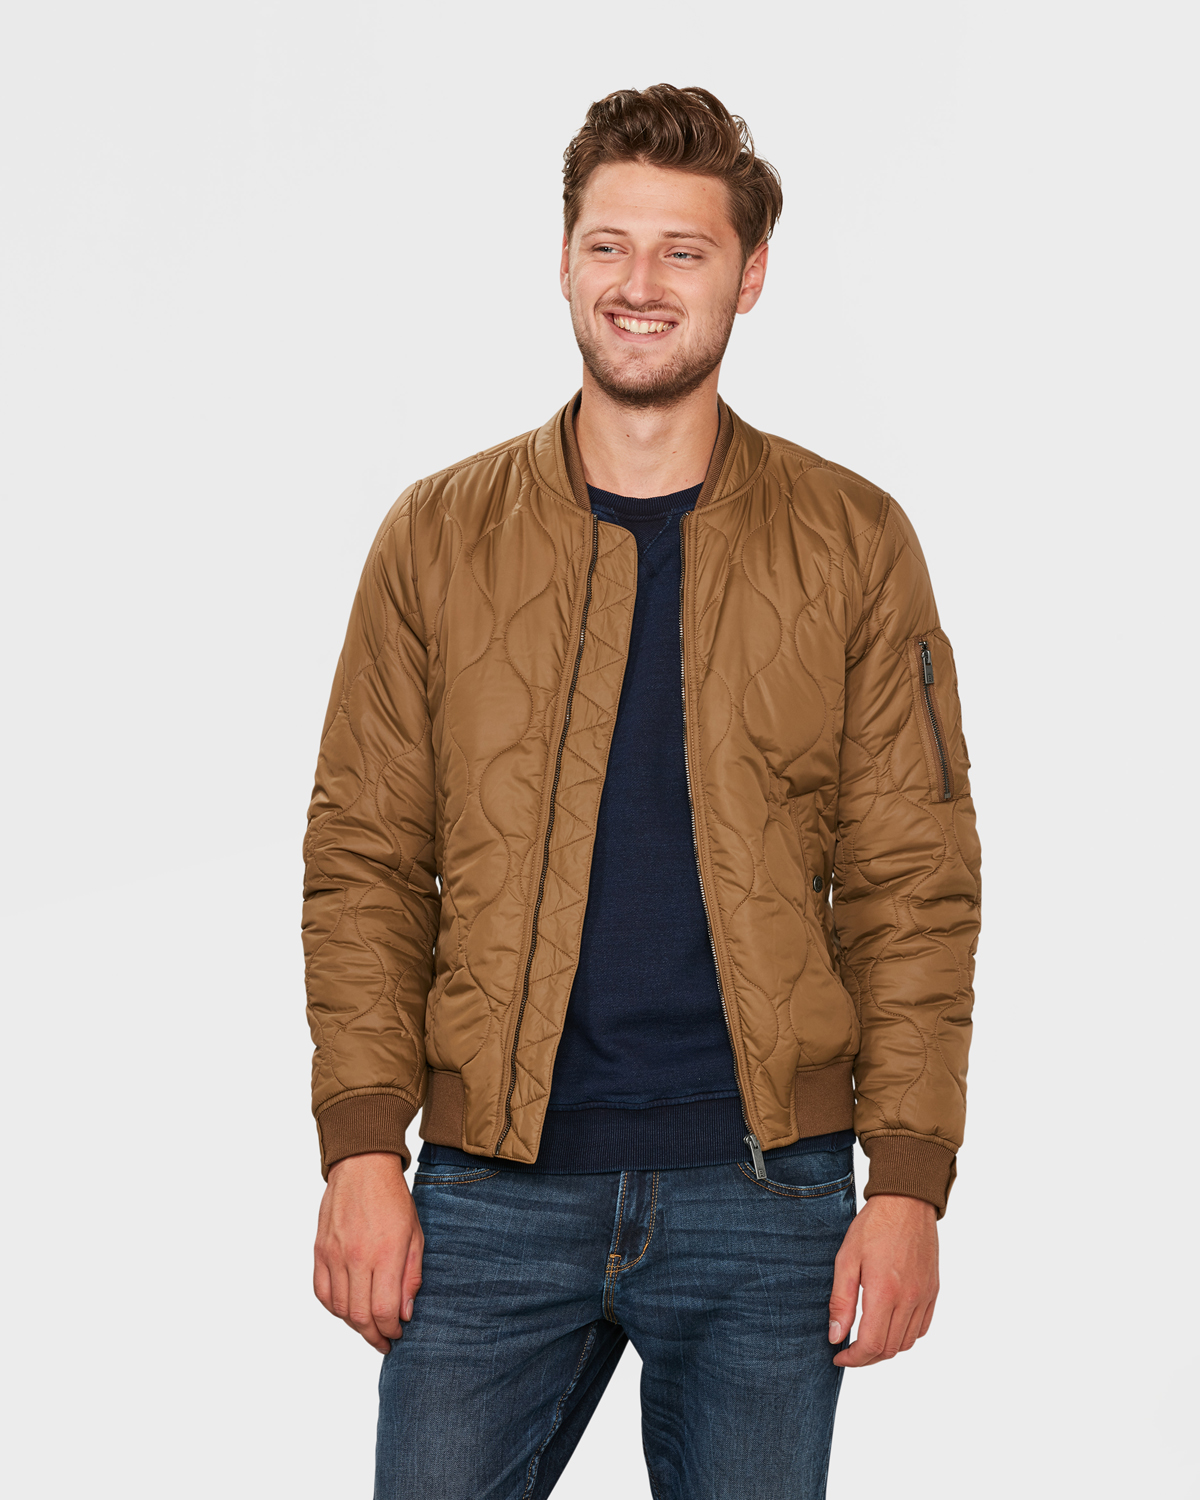 brand new 22daa bf90b HERREN-BOMBERJACKE MIT STEPPMUSTER | 79950374 - WE Fashion